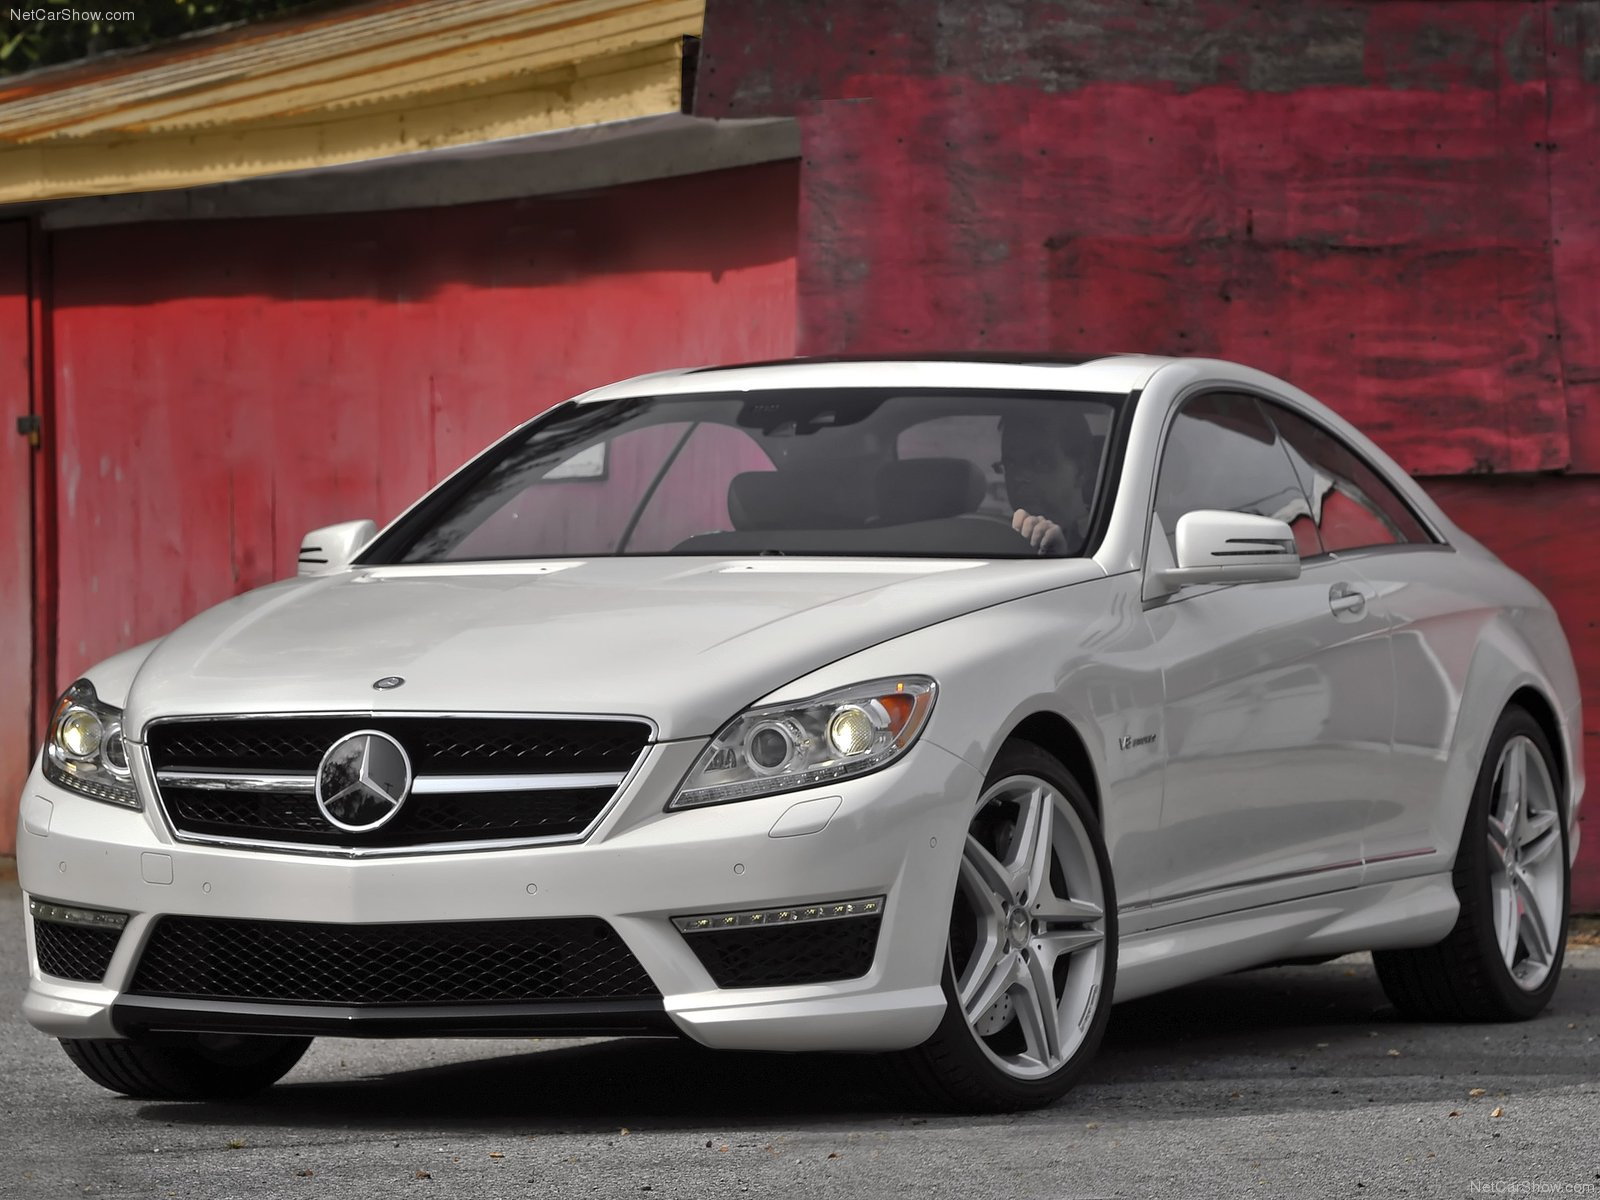 Mercedes benz cl63 amg picture 77483 mercedes benz for Mercedes benz cl63